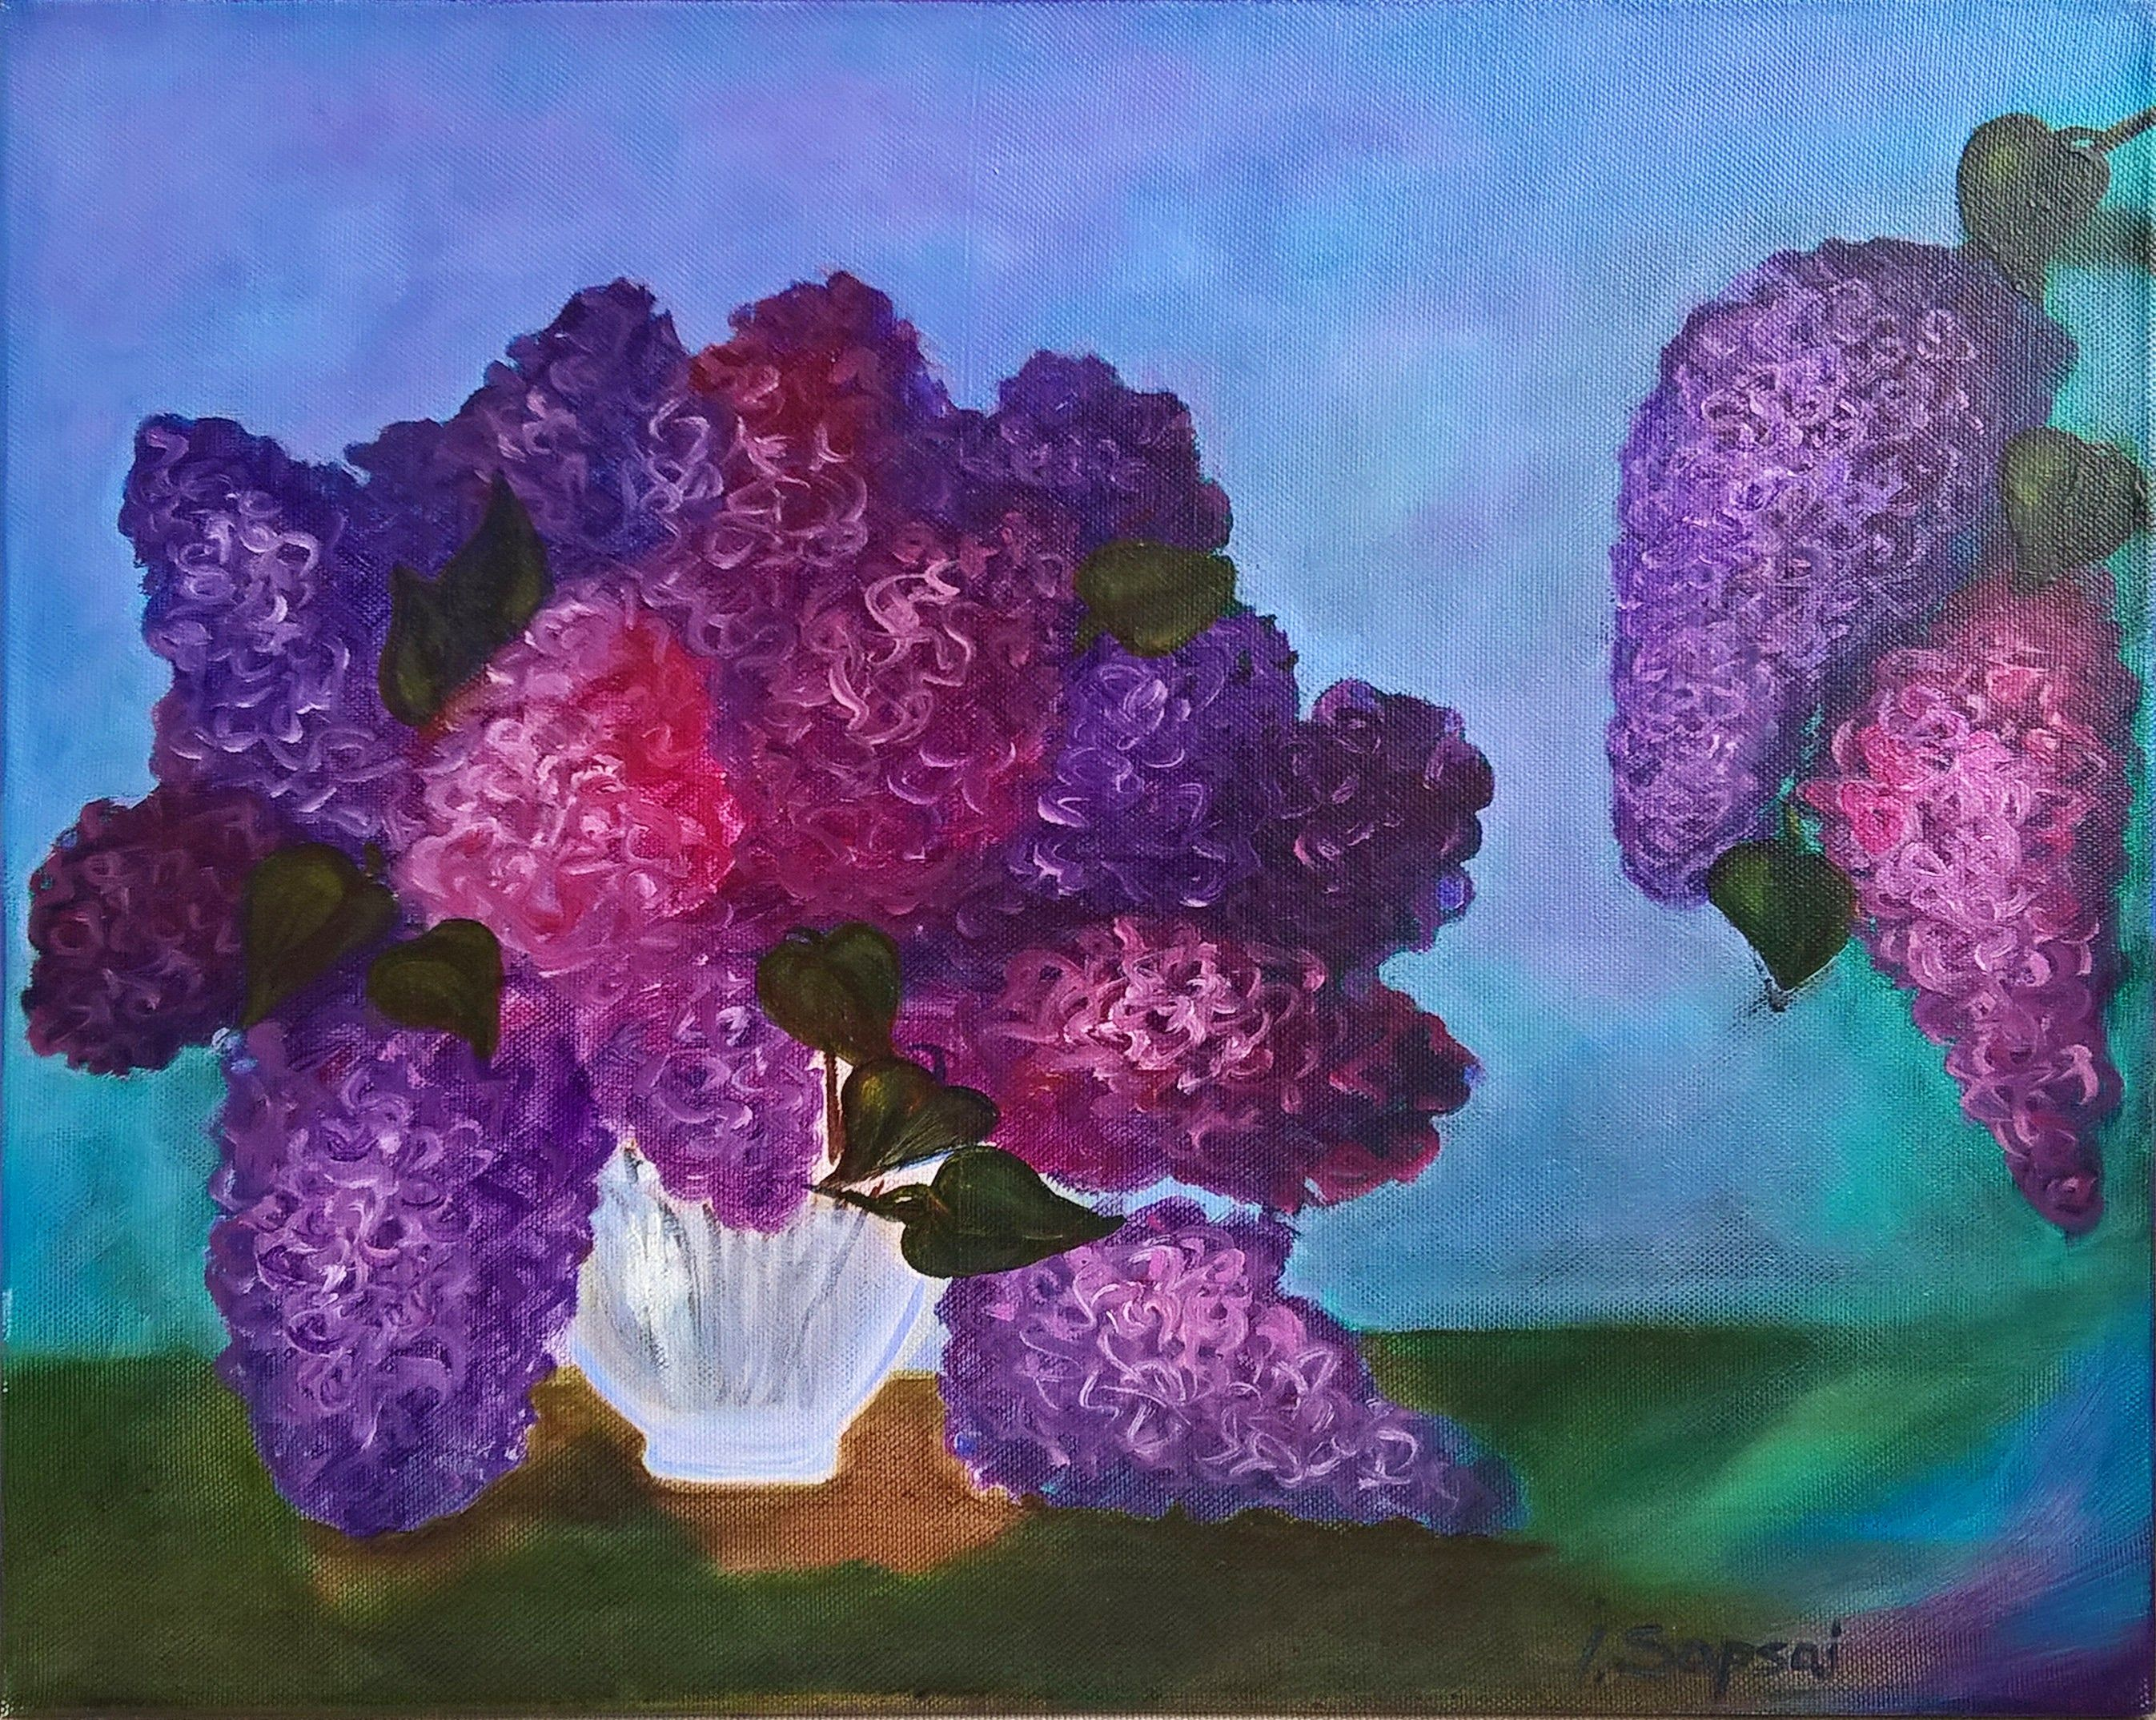 Lilac Flower Canvas Wall Art Lilacs In A Vase Still Life Flowers In A Vase Purple Flower Canvas Wall Art Oil Painting Lilacs Flowers In 2020 Flower Canvas Wall Art Flower